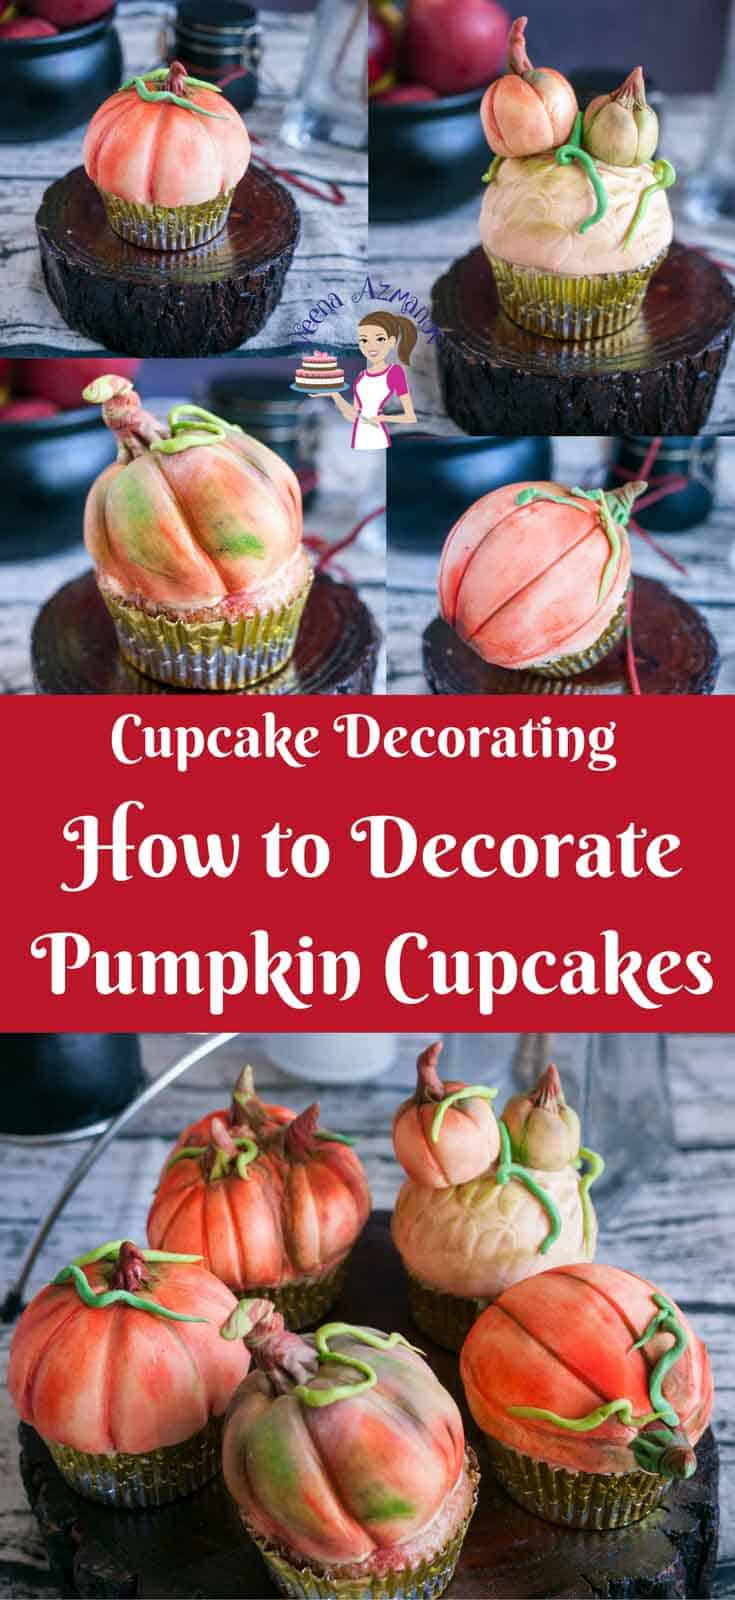 These pumpkin cupcakes are perfect treats to give as gifts to anyone big or small during the season of fall or Halloween. I've used my Pumpkin spiced apple cupcakes recipe and decorated them to look like pumpkins. They are simple easy and adorable as  you can see in the video tutorial. #pumpkin #Cupcakes #decorating #cupcake #cupcakedecorating #easypumpkincupcakes #pumpkincaketopper #cakedecorating #tutorial #video